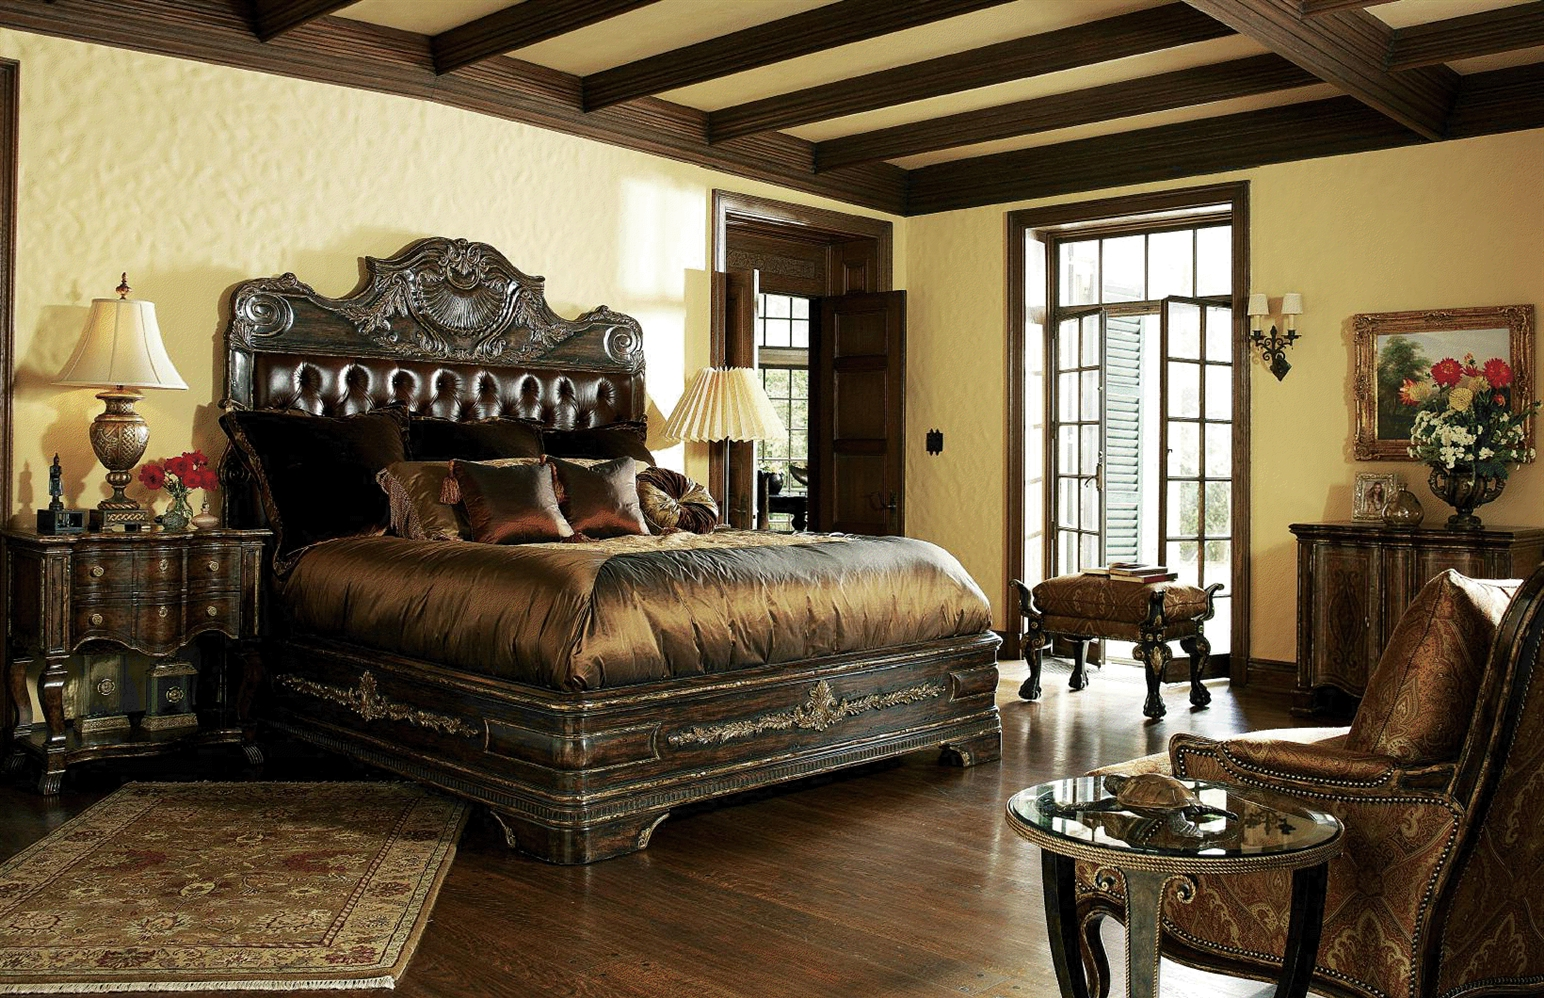 Queen And King Sized Beds 1 High End Master Bedroom Set Carvings And Tufted  Leather Headboard